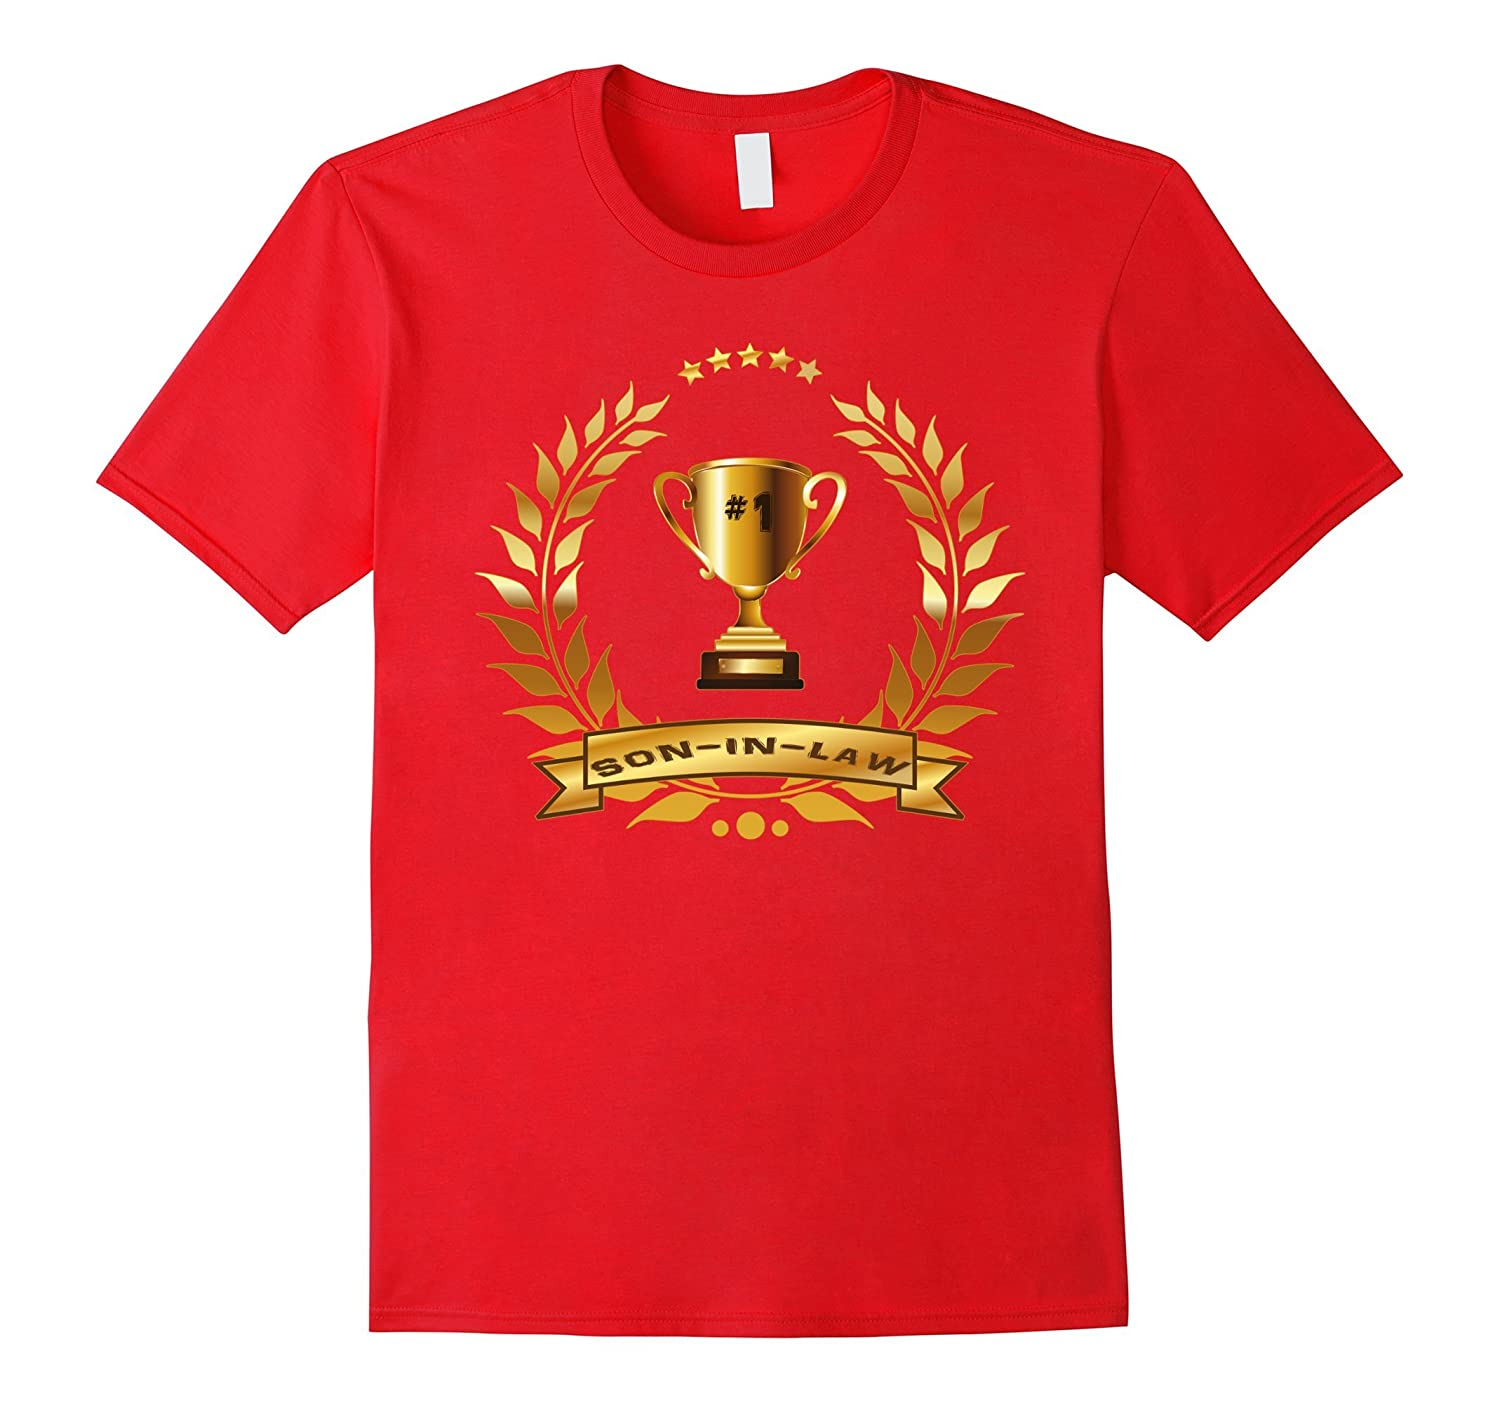 1 Son-In-Law T-Shirt With Trophy-Gift For Best Son-In-Law-PL